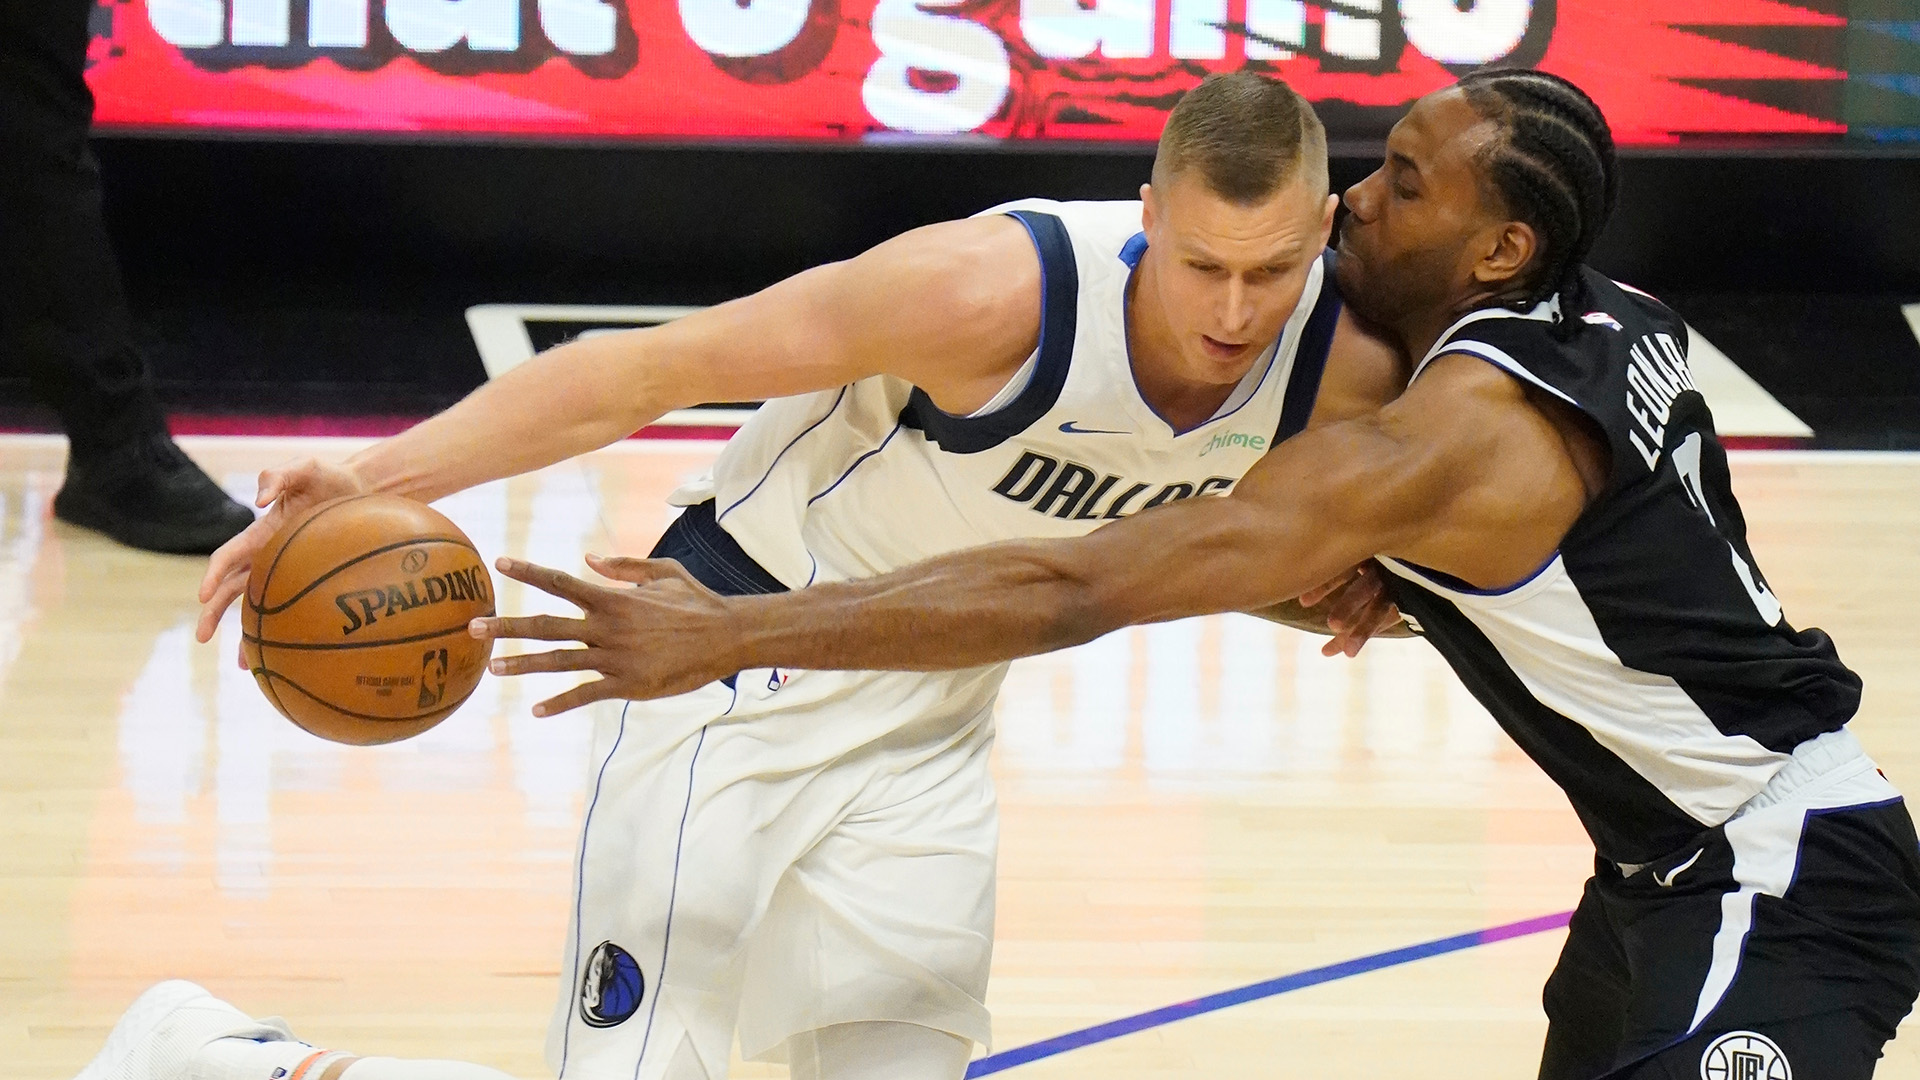 Kristaps Porzingis fined for attending club in violation of NBA rules